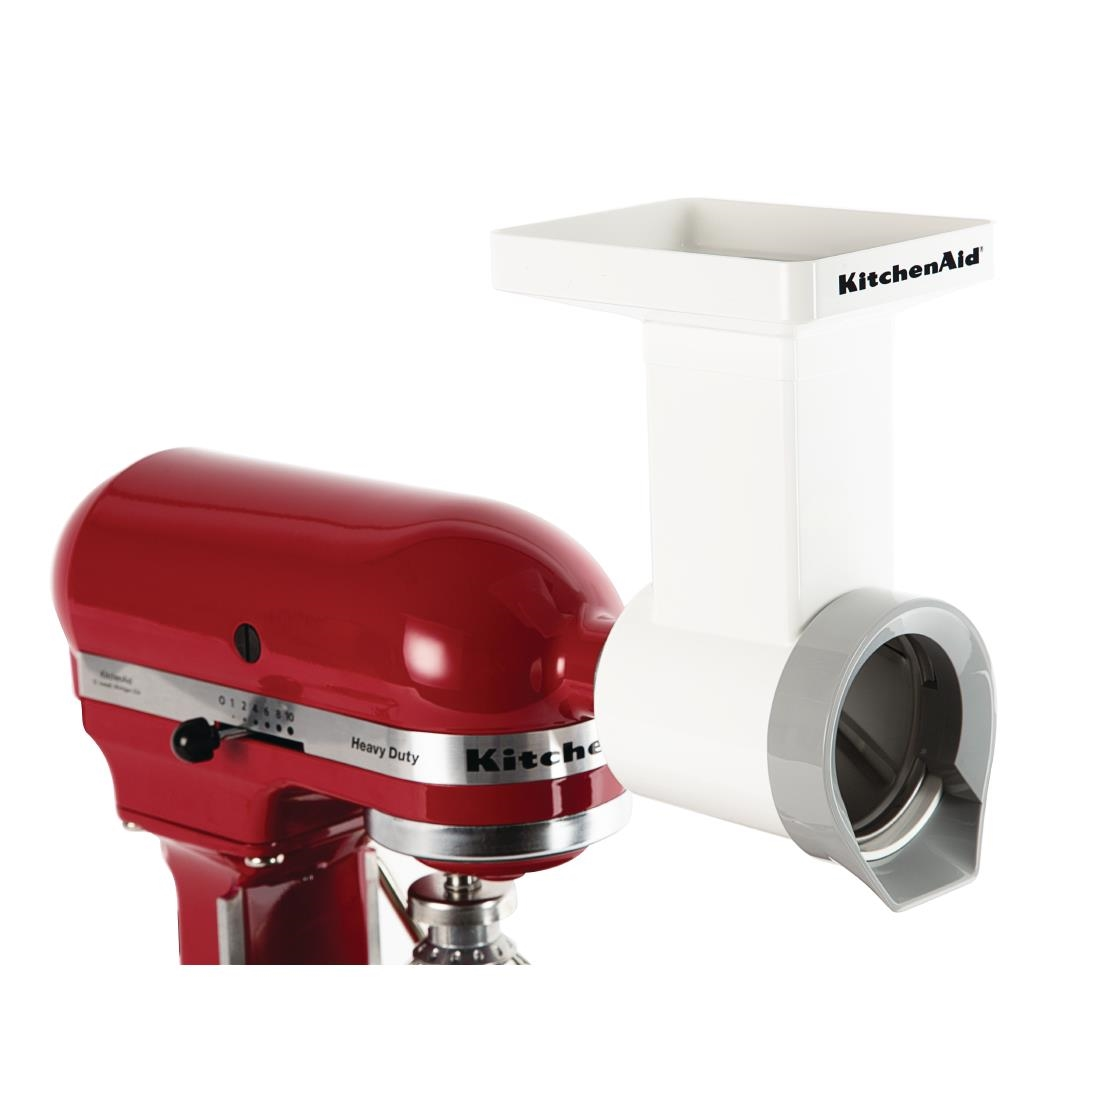 kitchenaid mixer attachments slicer. kitchenaid-mvsa-slicer-shredder-attachment kitchenaid mixer attachments slicer